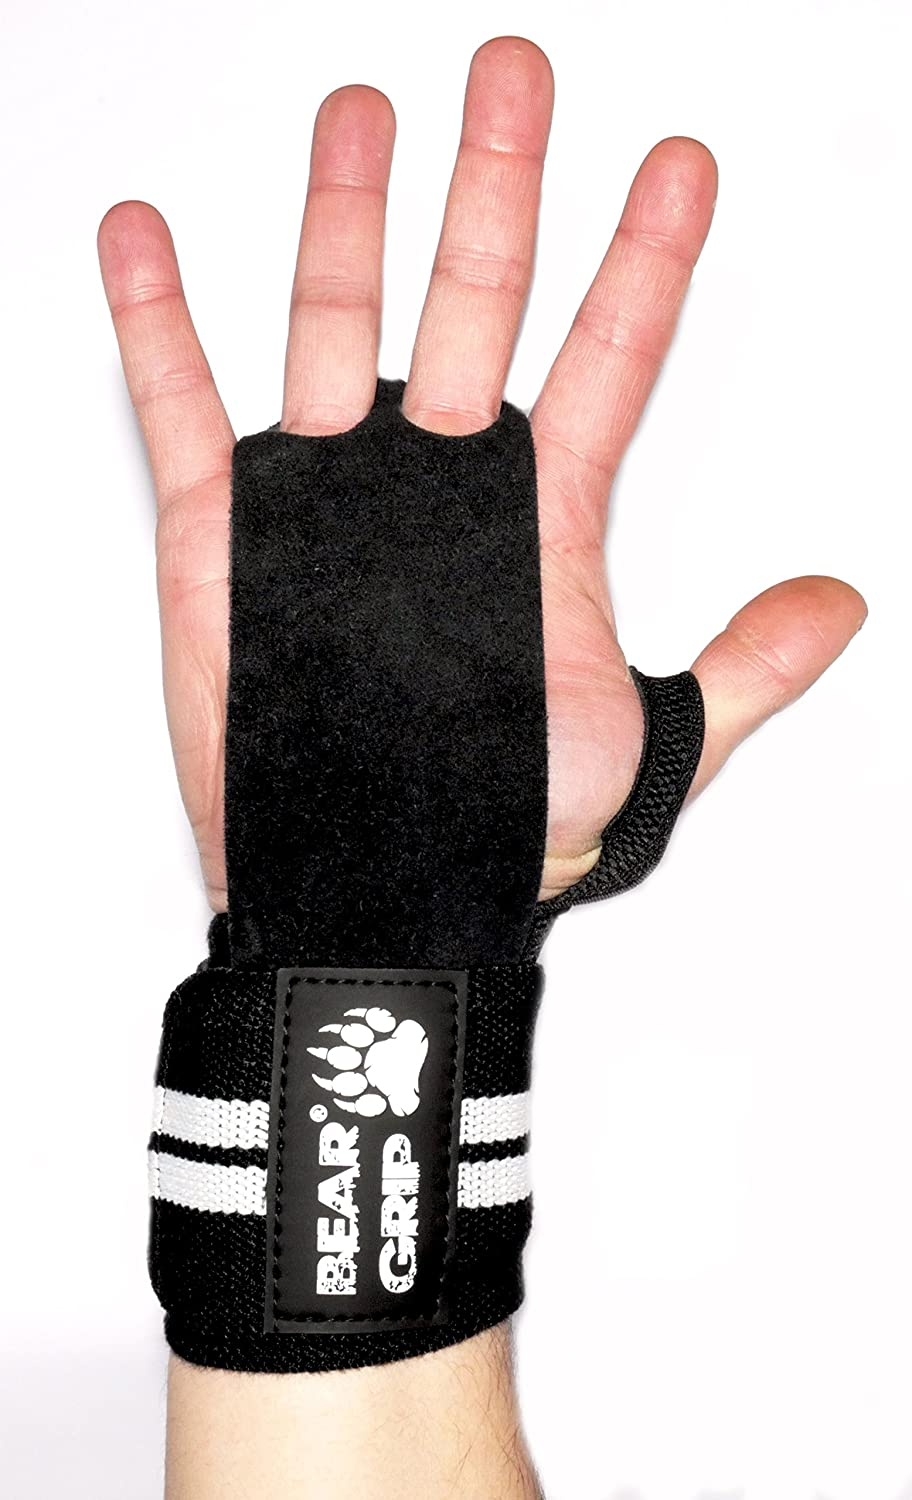 BEAR GRIP Accessories weight lifting gloves with wrist support wraps